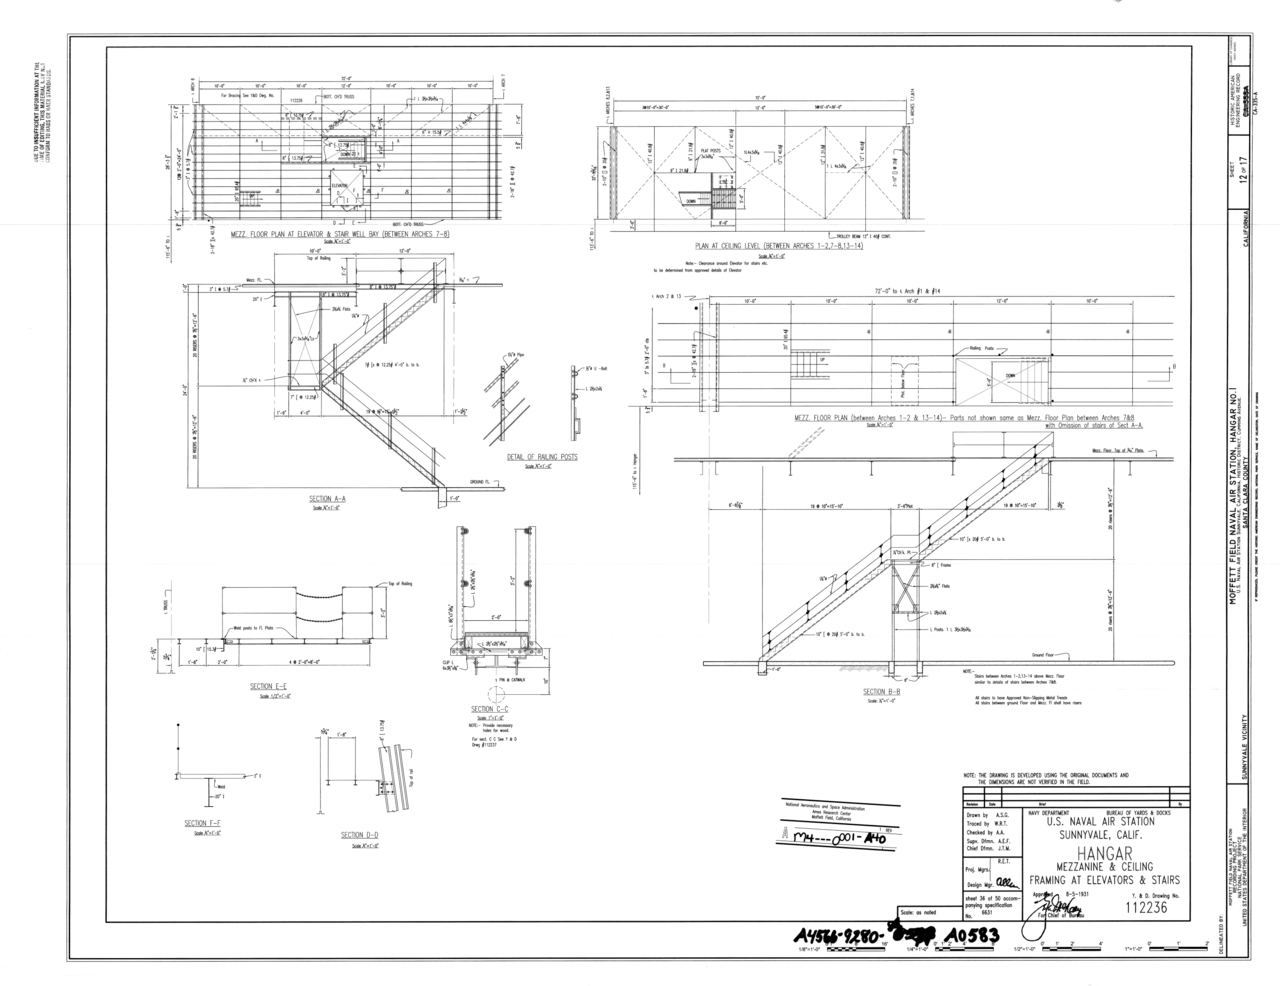 Mezzanine Construction Detail : File original drawing mezzanine and ceiling framing at